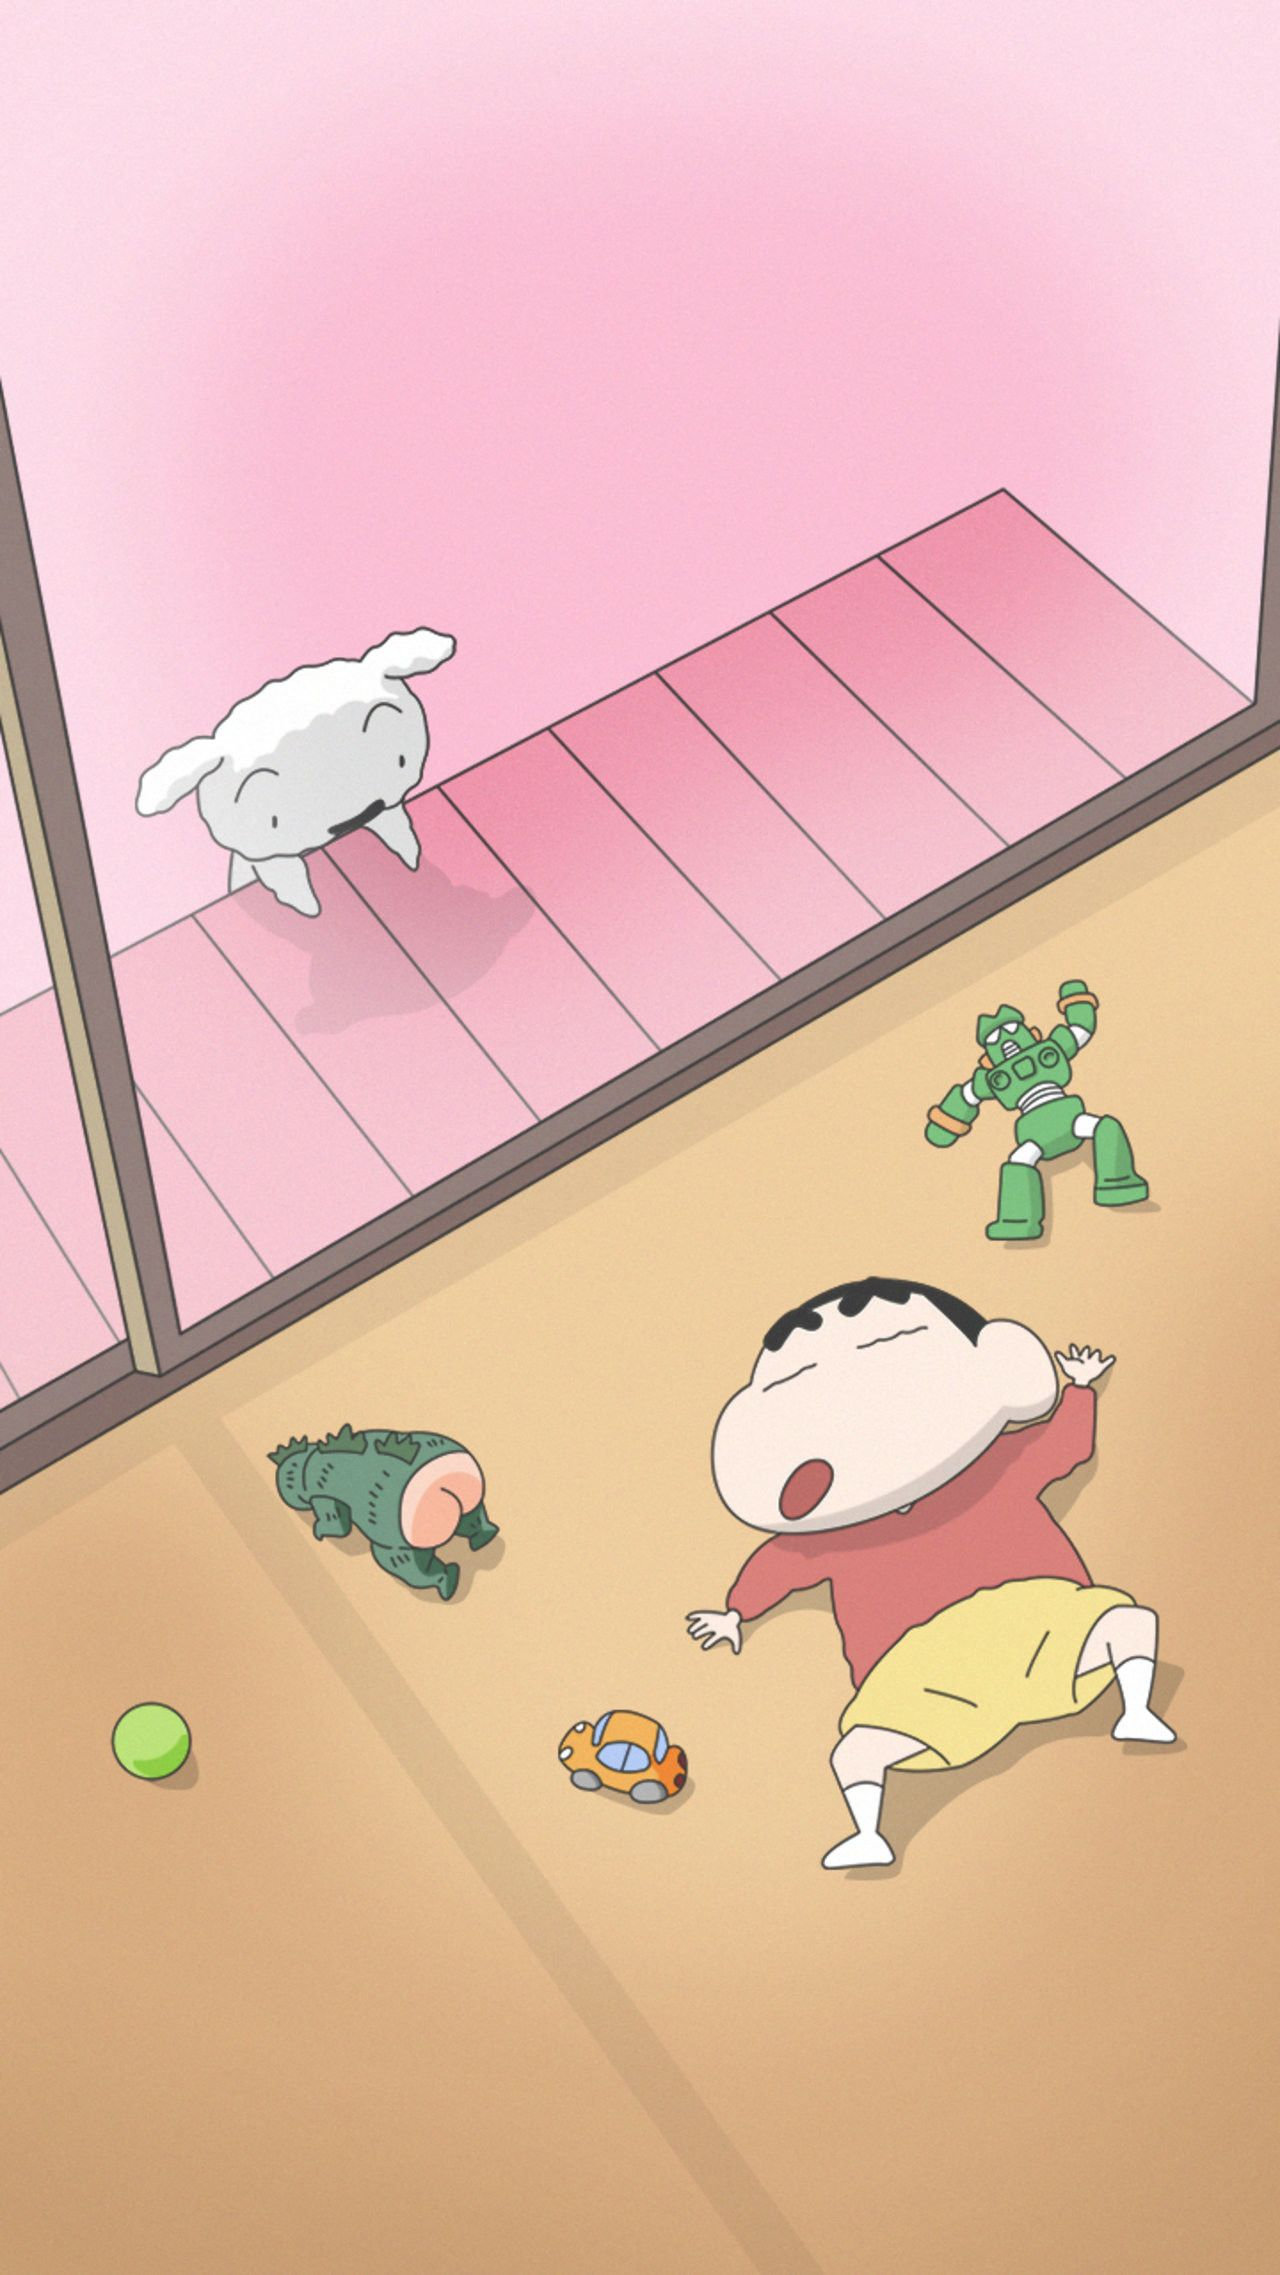 Shin Chan Wallpapers For Iphone 5 Getwallpapers Is One Of The Most Popular Wallpaper Community O In 2020 Shin Chan Wallpapers Crayon Shin Chan Cute Cartoon Wallpapers